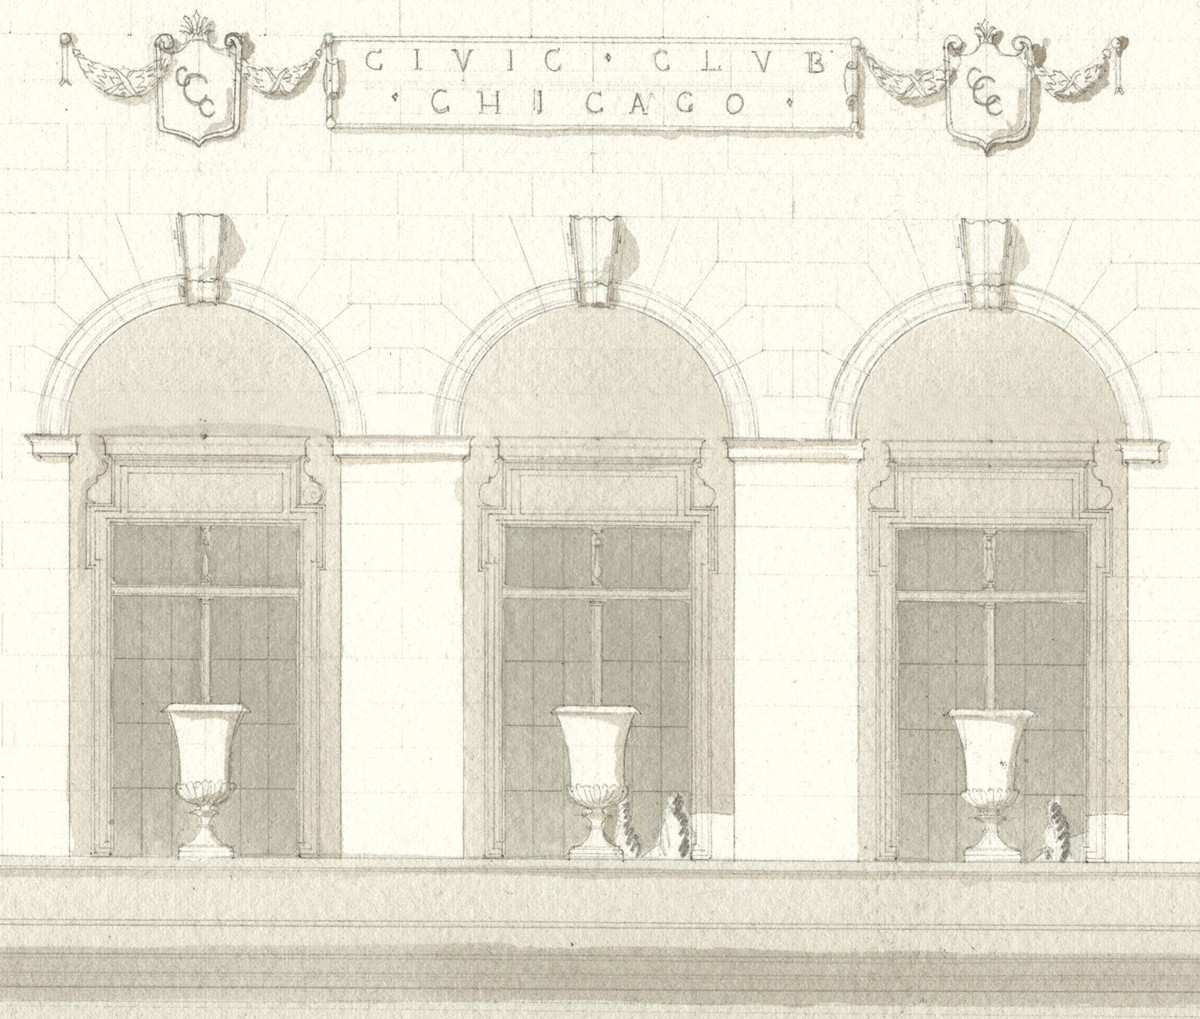 civic club - loggia detail